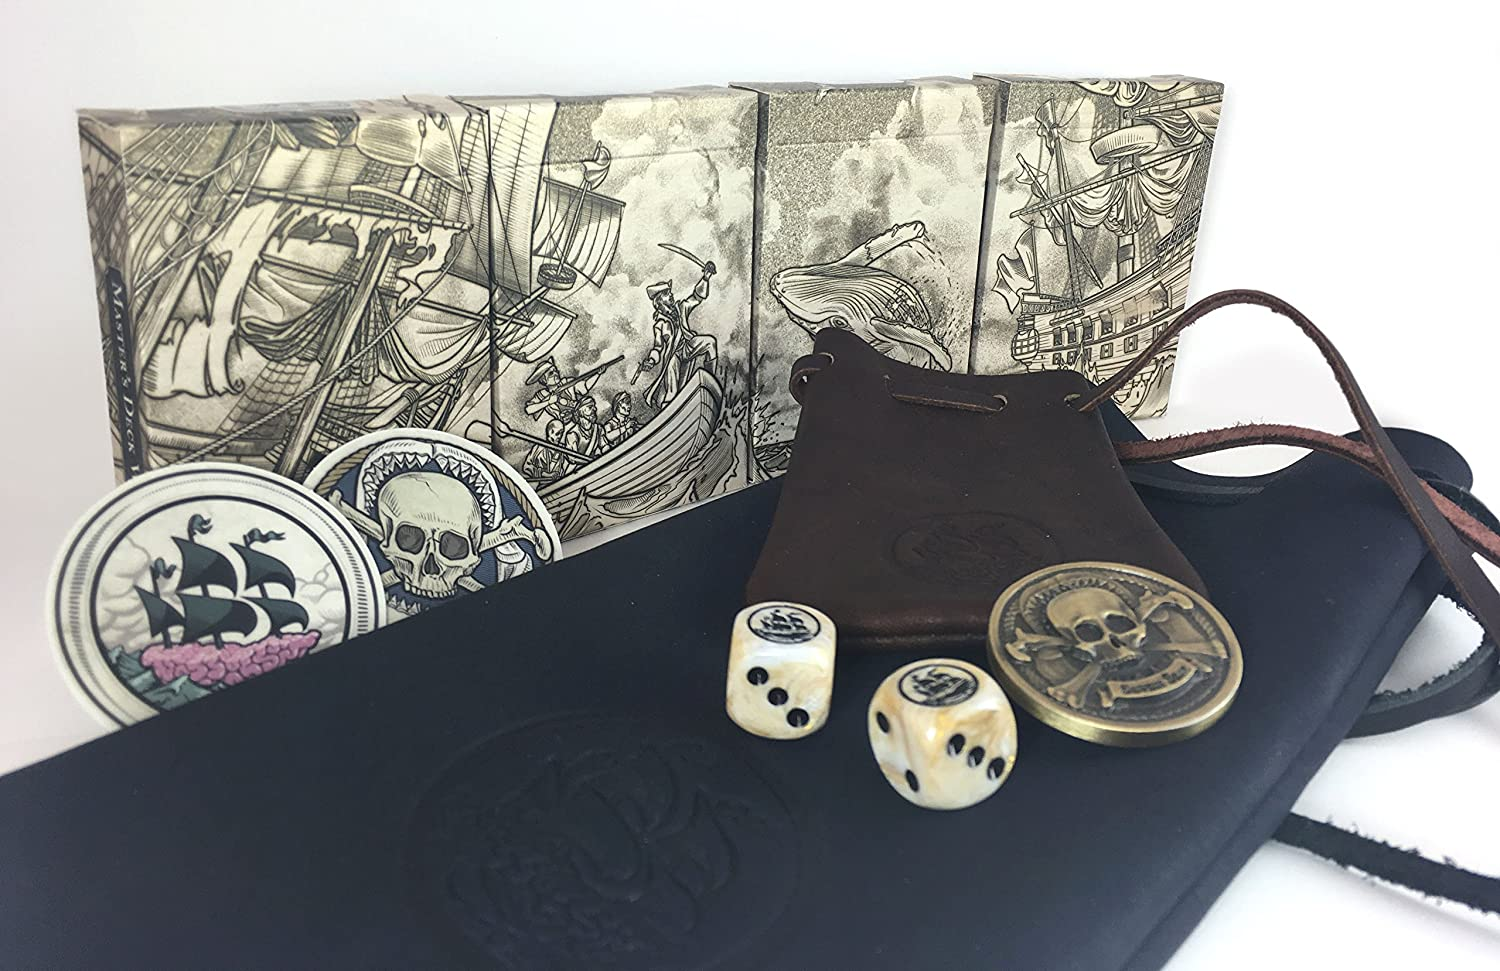 Deluxe Adult Costumes - Pirate Leather Pouch Card and Dice Gambling Set.